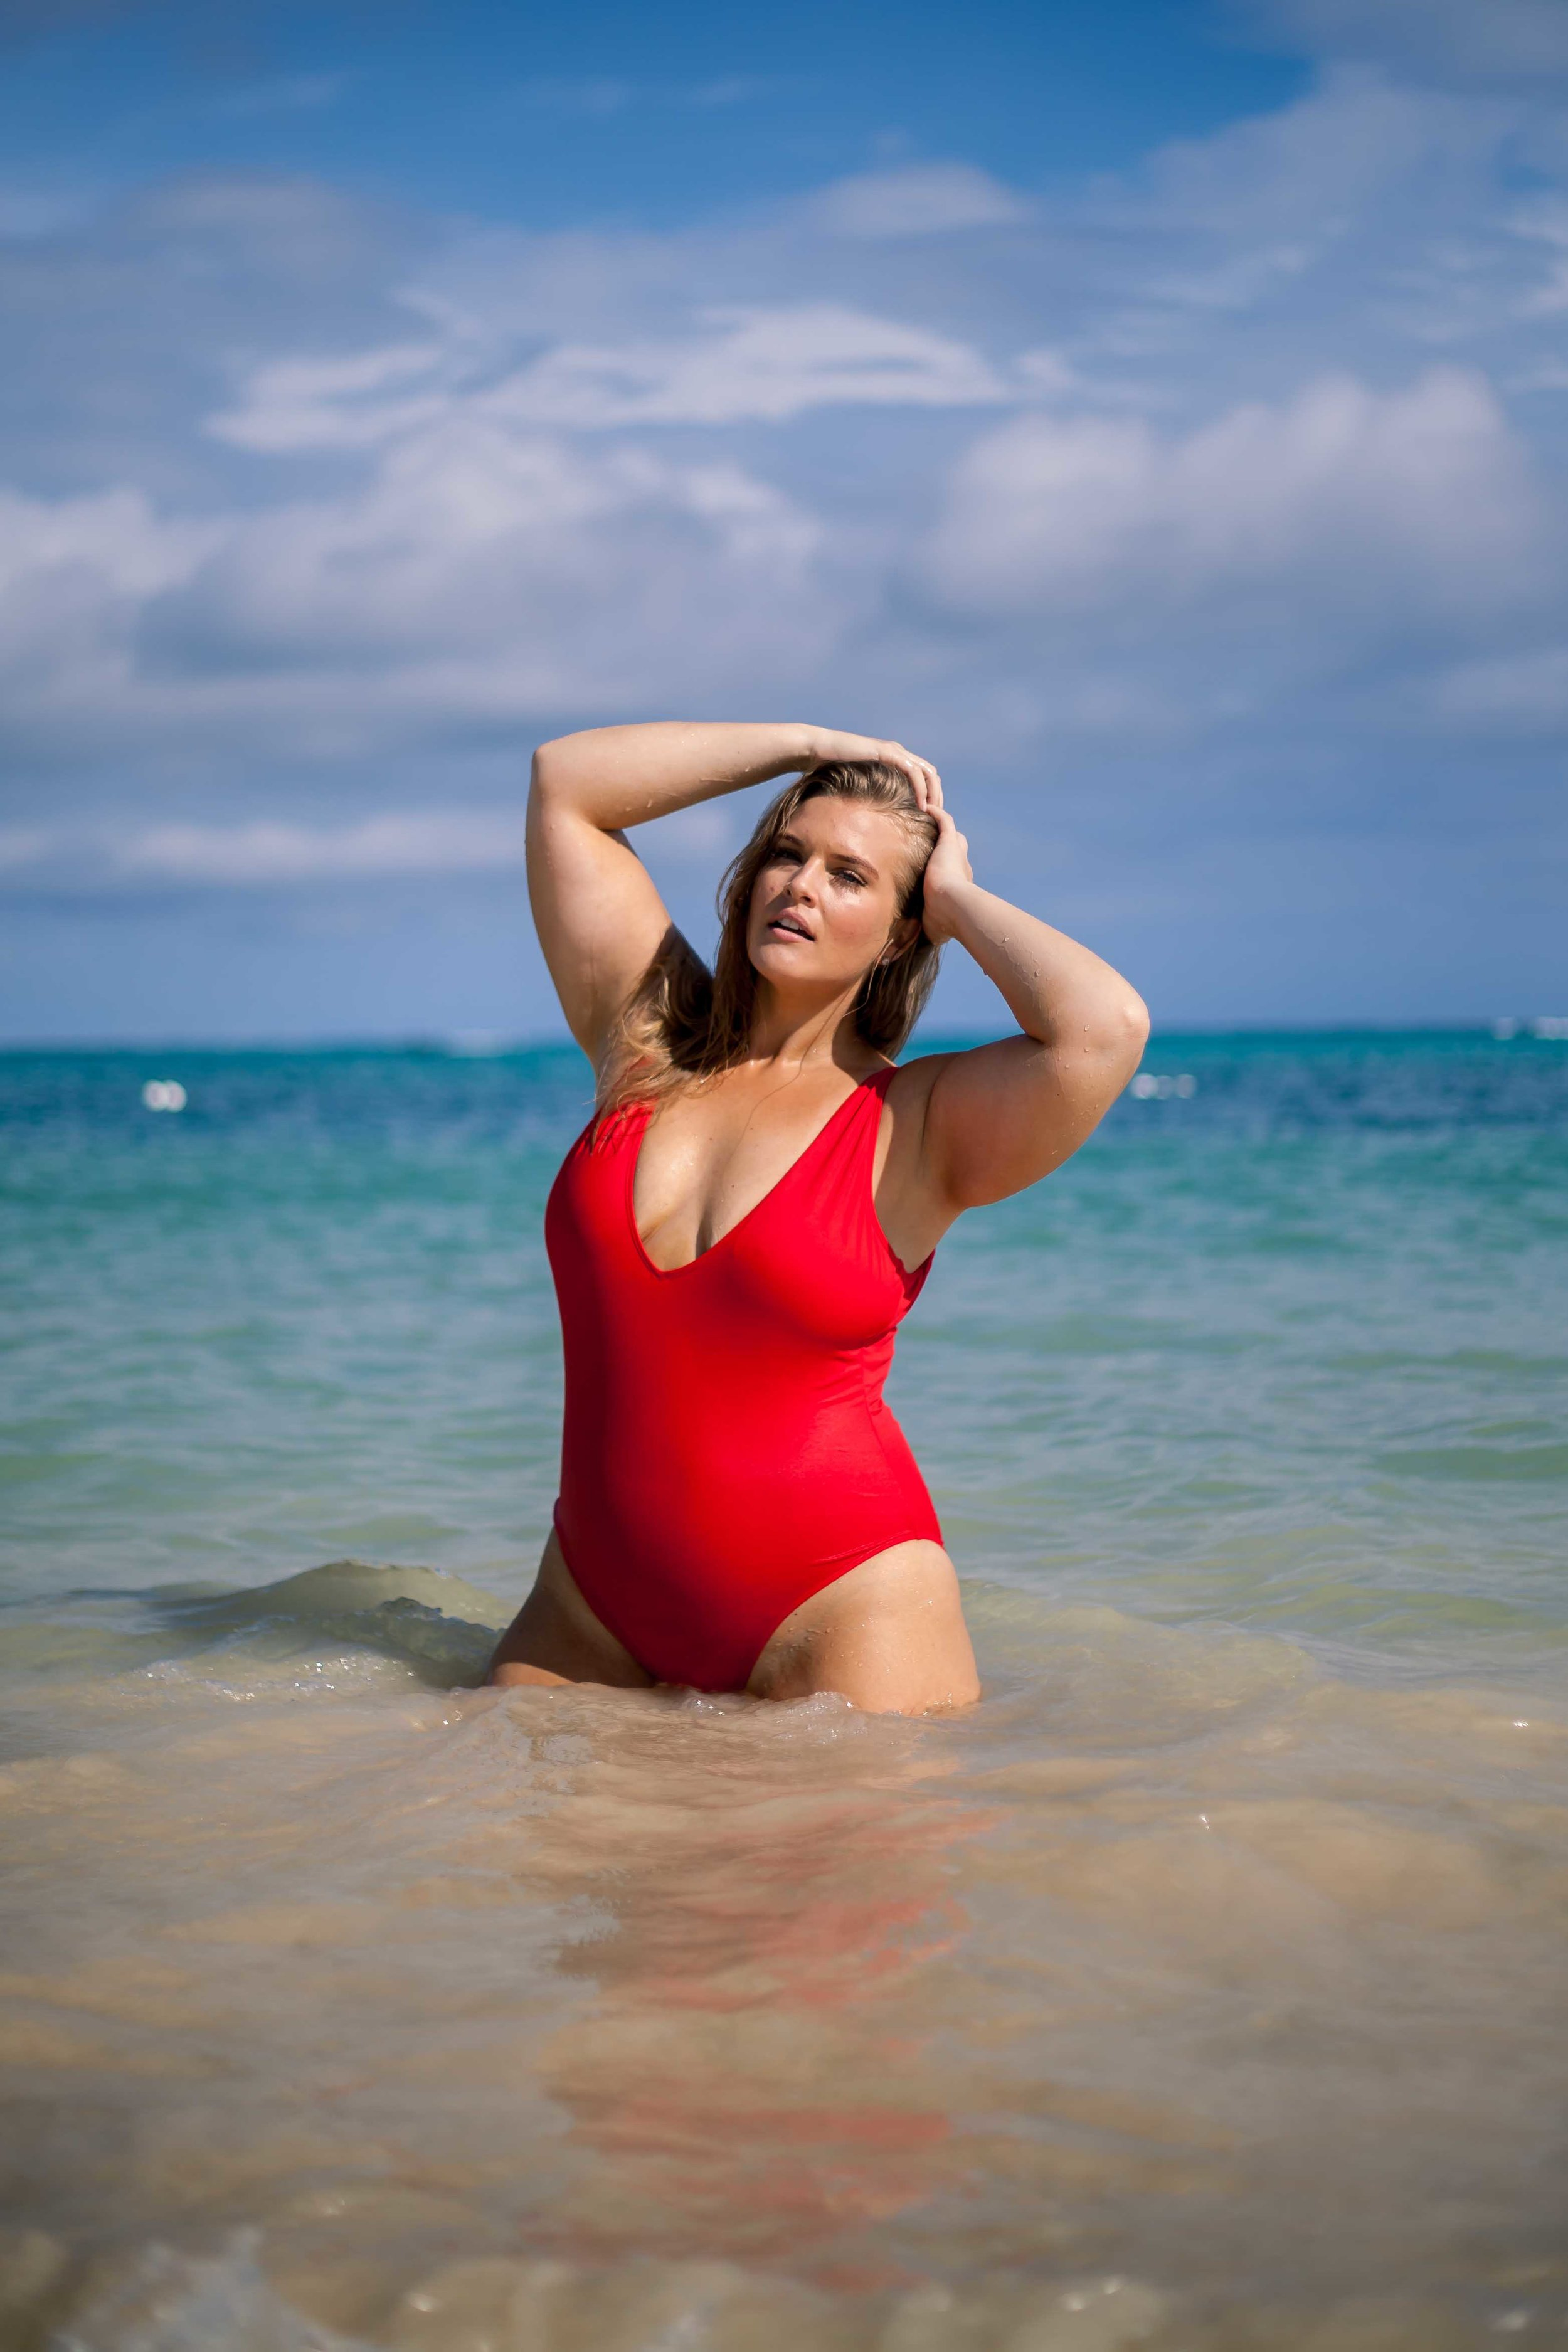 About - Krista Mays is 32 years old, living in New York City as a Plus Size Model and small business owner. She decided to freeze her eggs after learning her journey to motherhood might look different than she imagined.